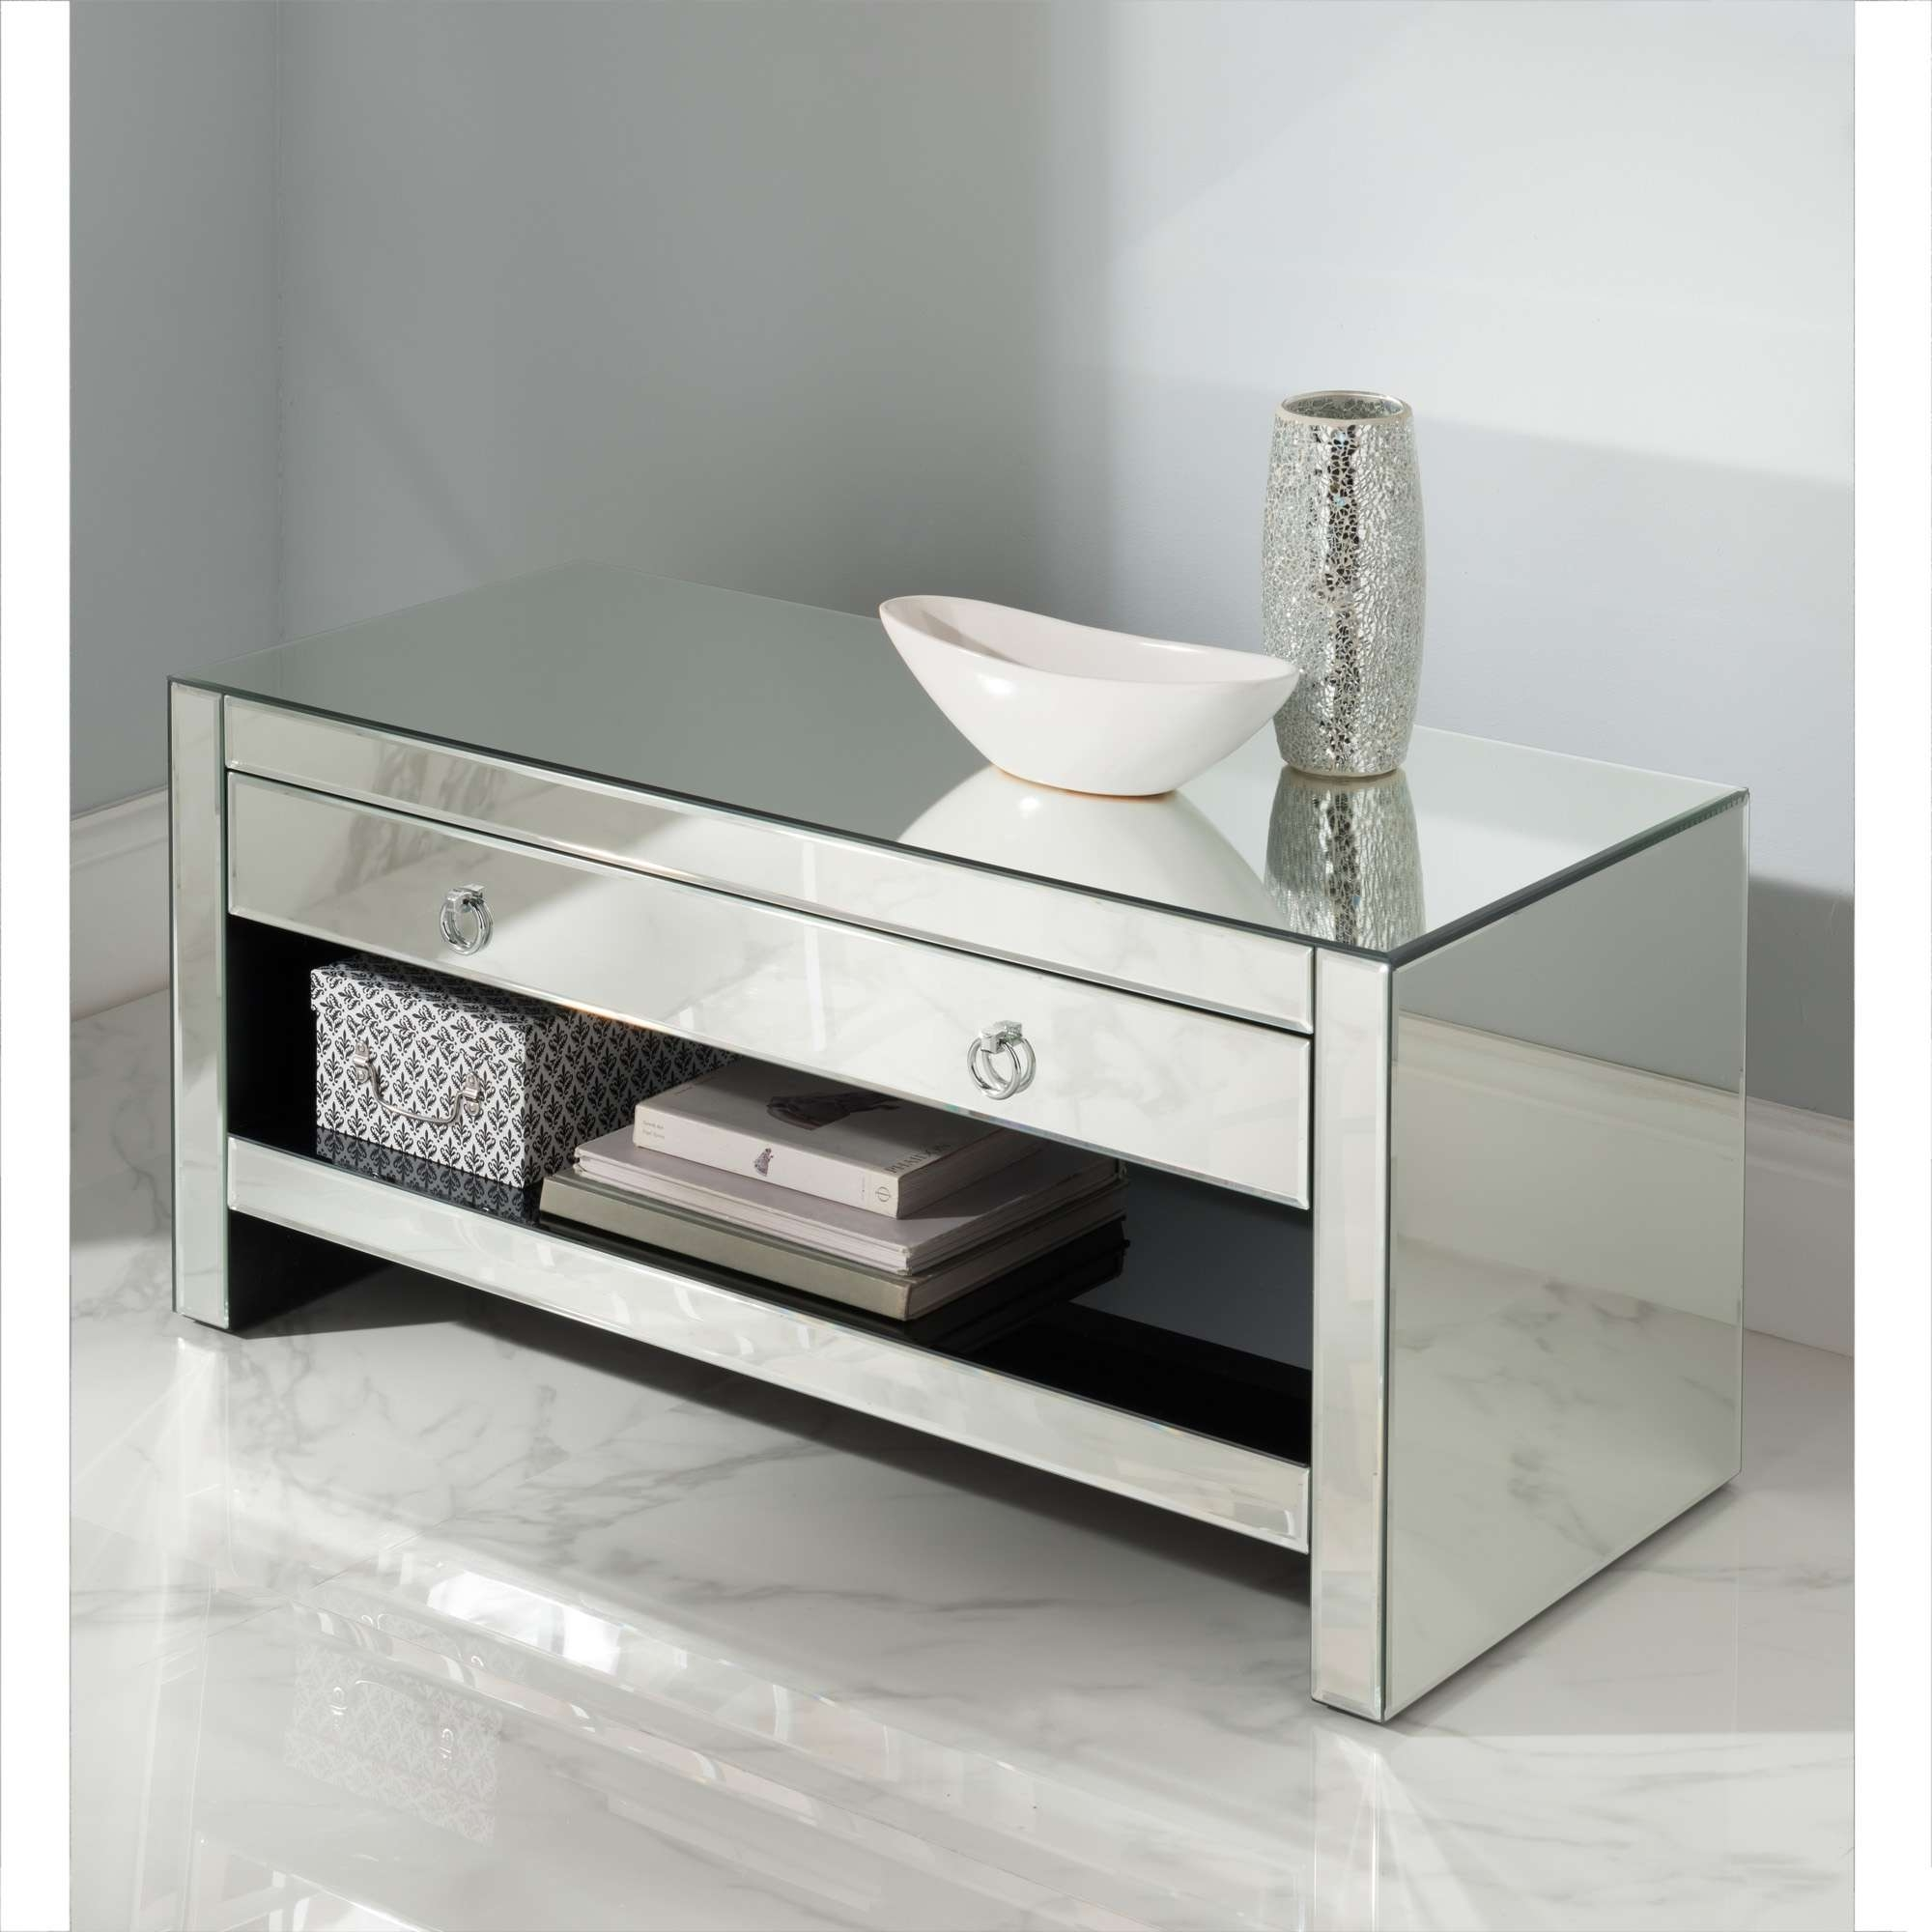 Mirrored Tv Cabinet | Glass Venetian Furniture | Homesdirect365 With Regard To Mirrored Tv Cabinets (View 8 of 20)